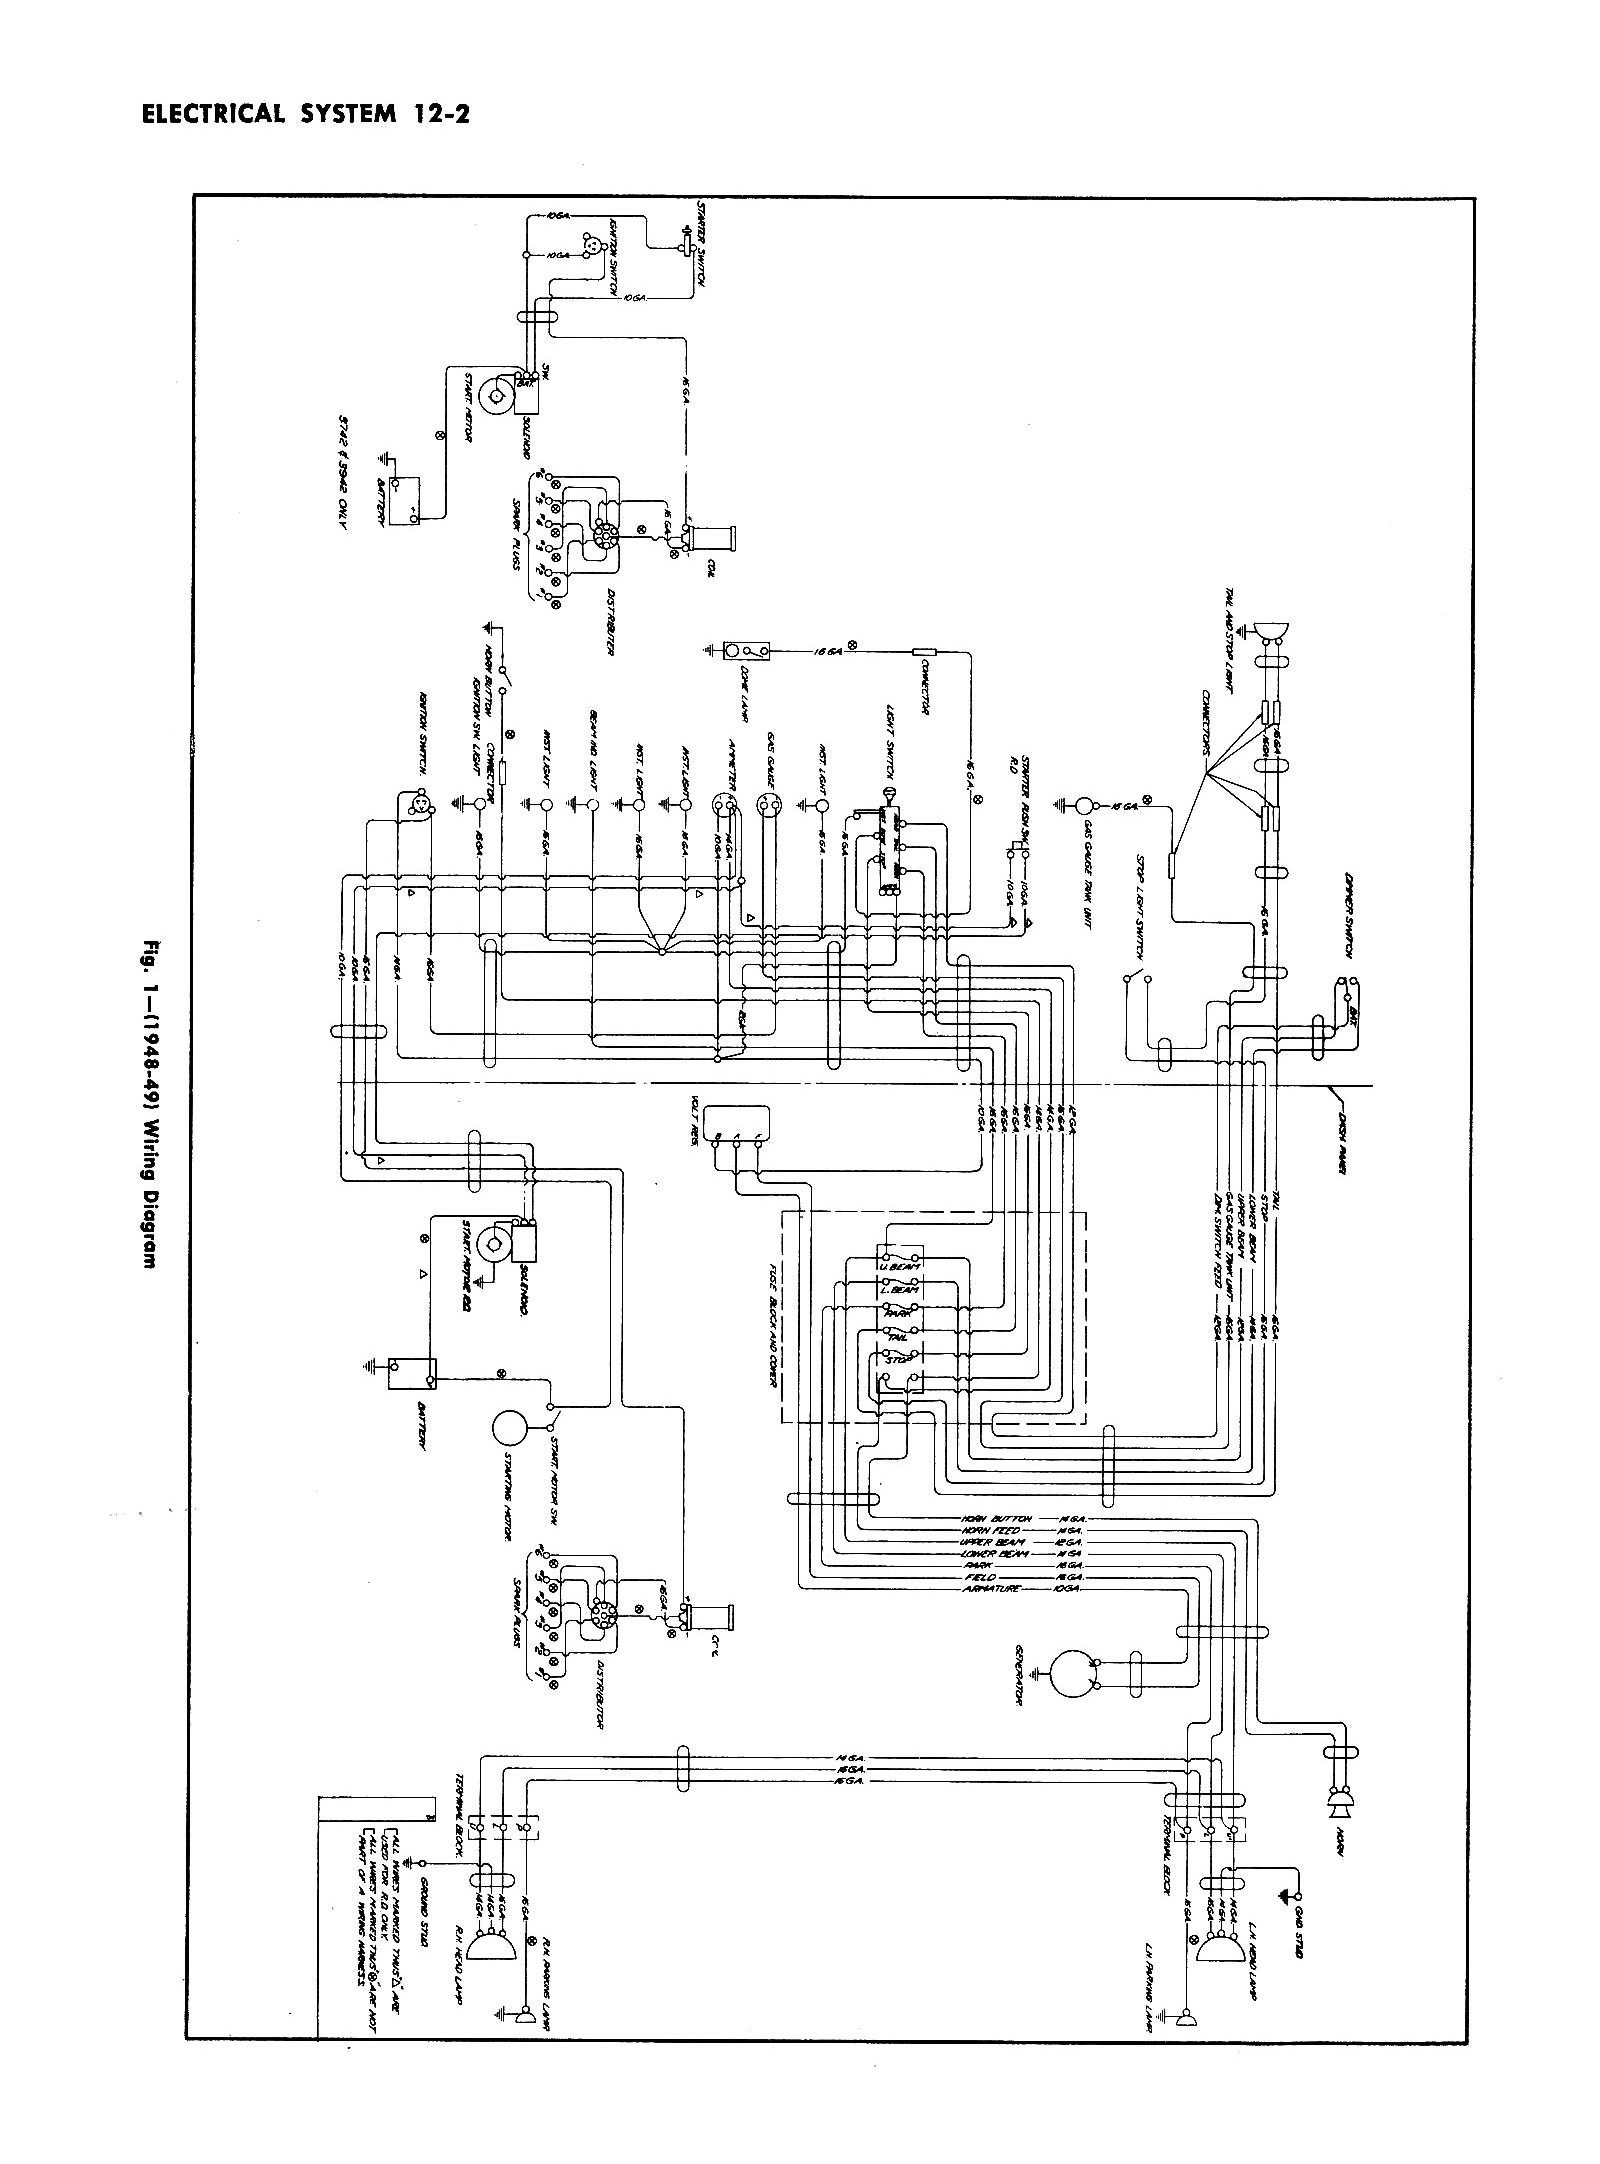 1954 chevy truck engine diagram